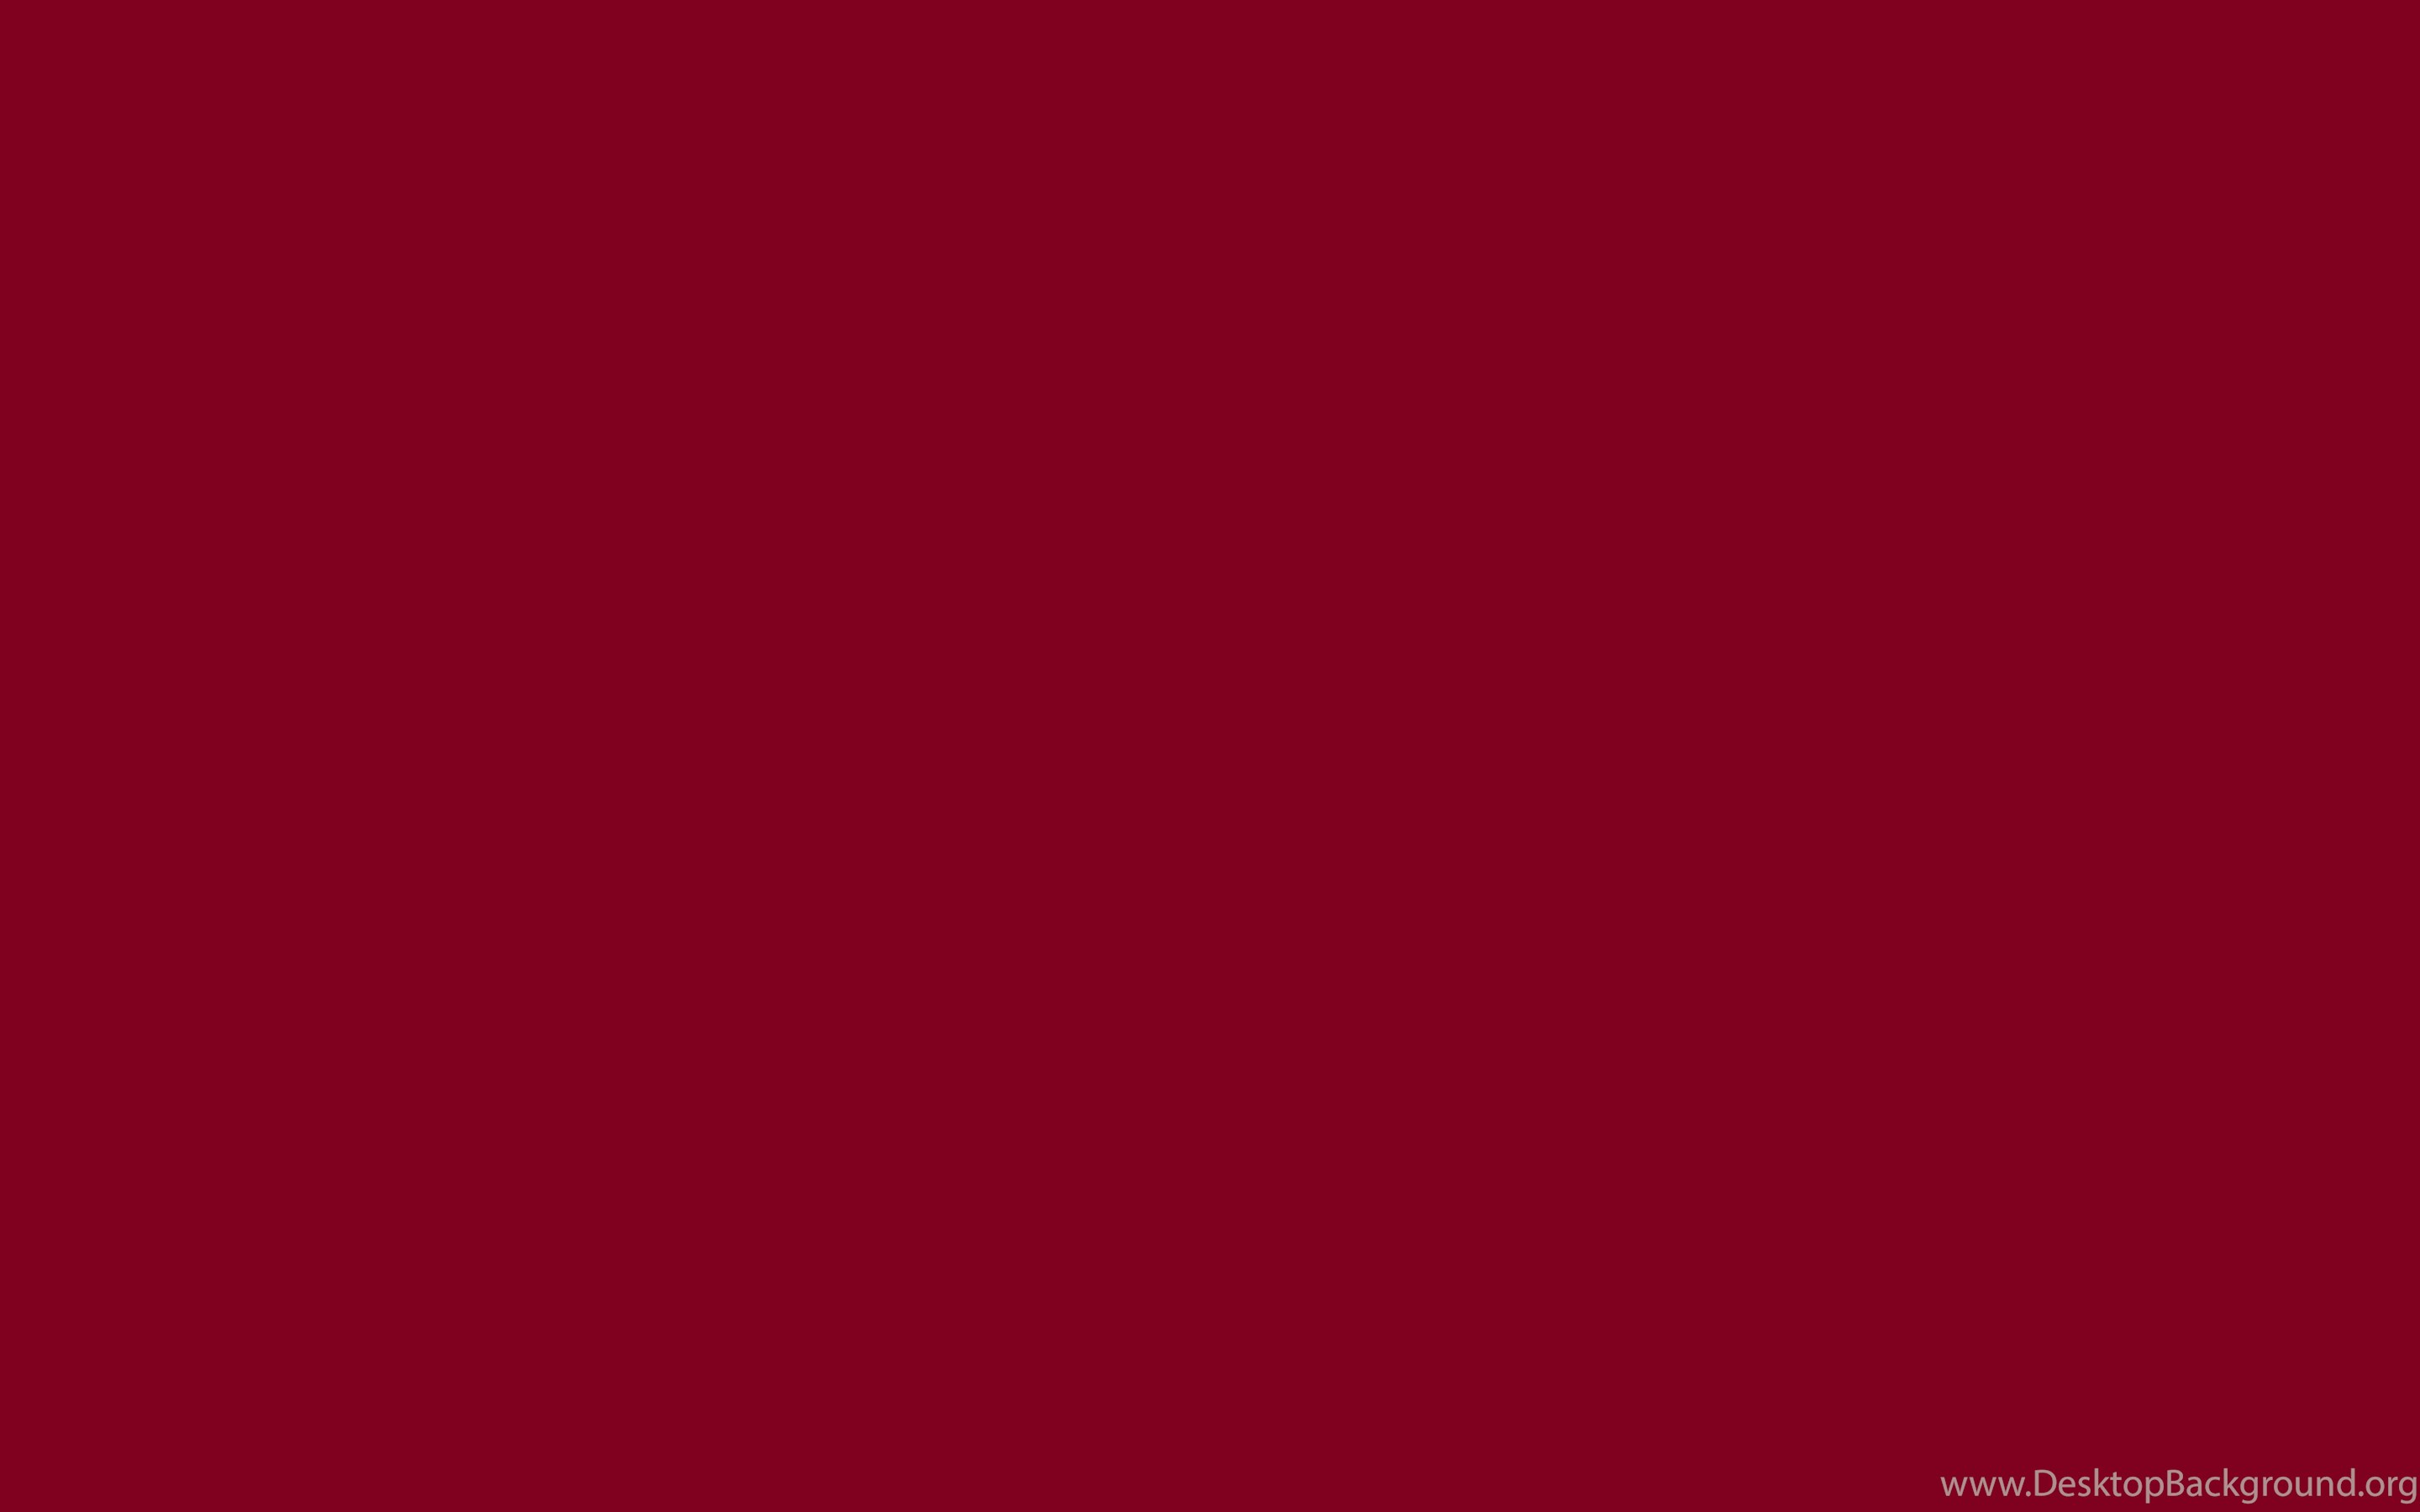 2880x1800 burgundy solid color backgrounds desktop background. Black Bedroom Furniture Sets. Home Design Ideas